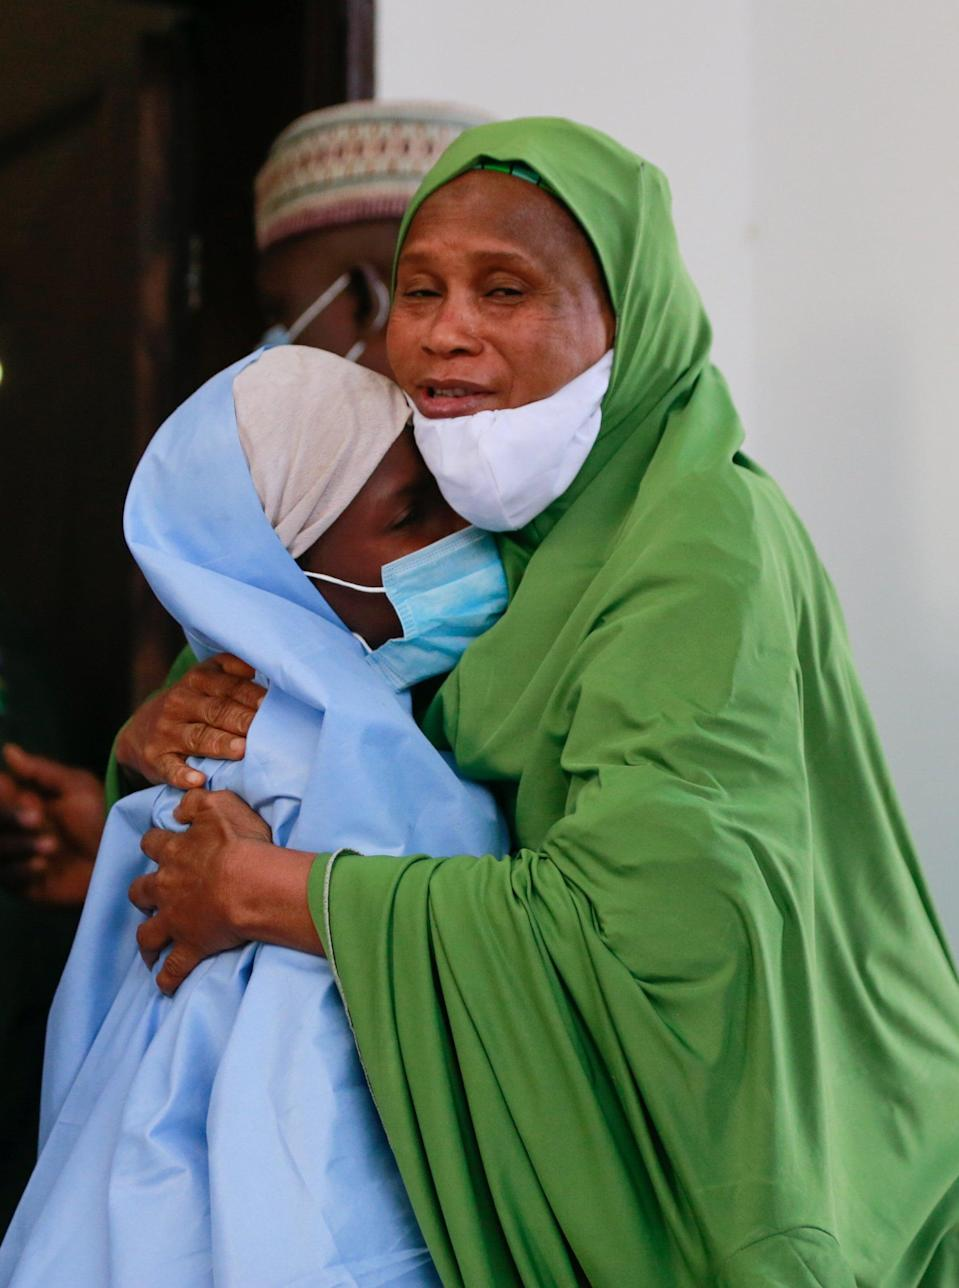 An official embraces one of the victims.REUTERS